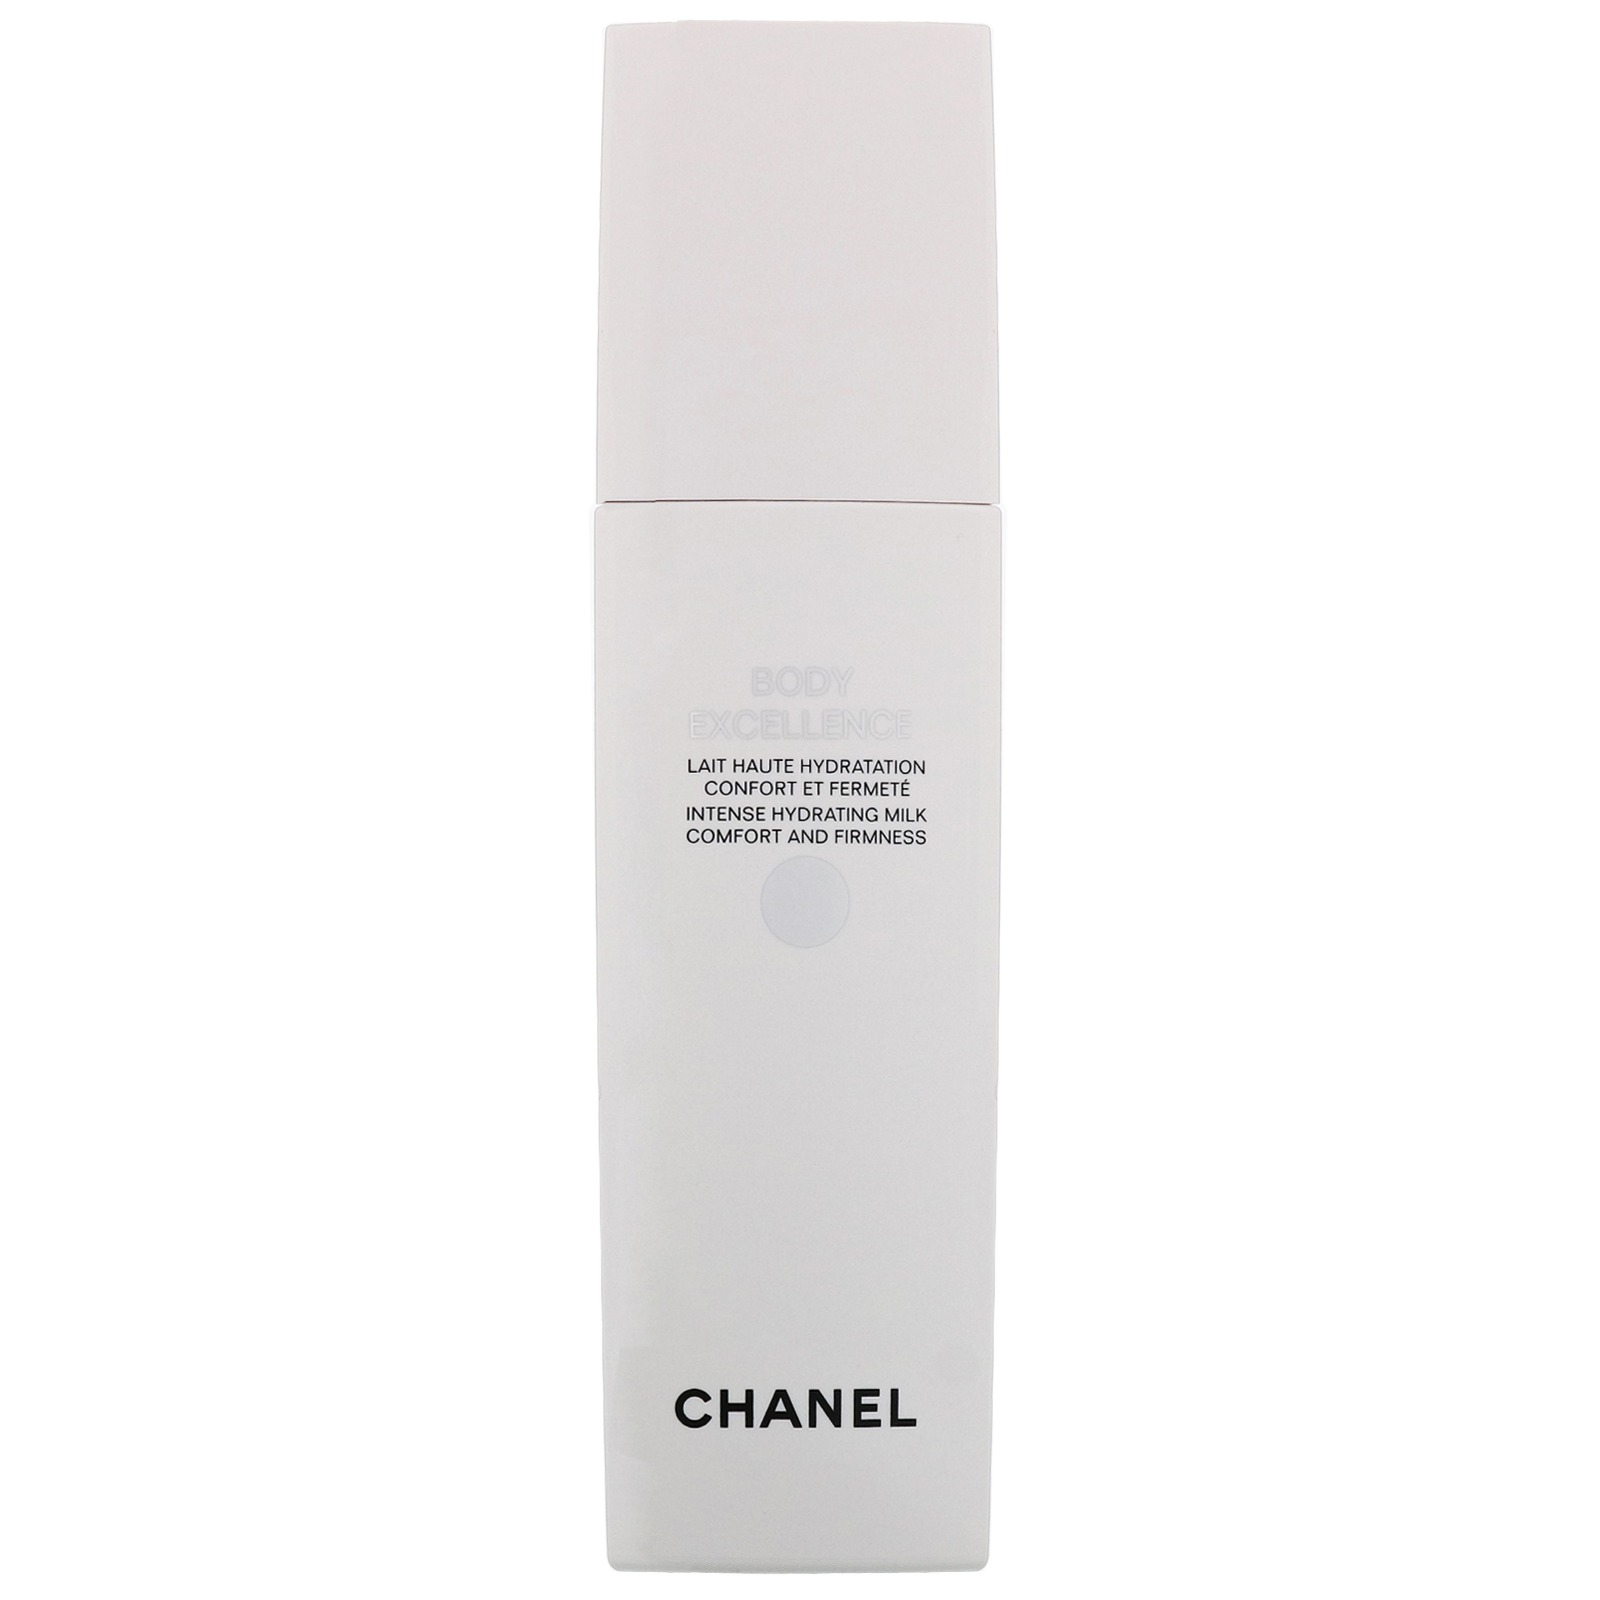 Chanel Body Care Body Excellence Intense Hydrating Milk Comfort & Firmness 200ml